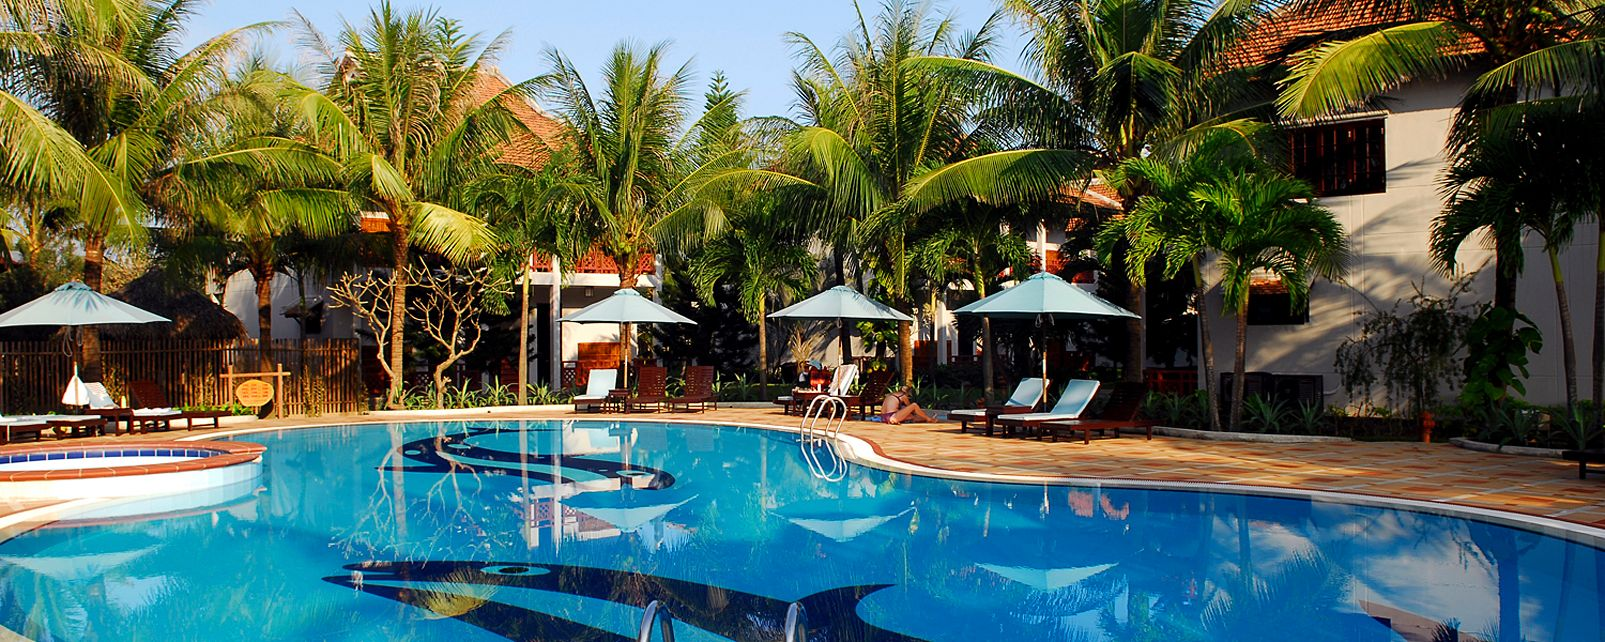 Hotel Hoi An Beach Resort